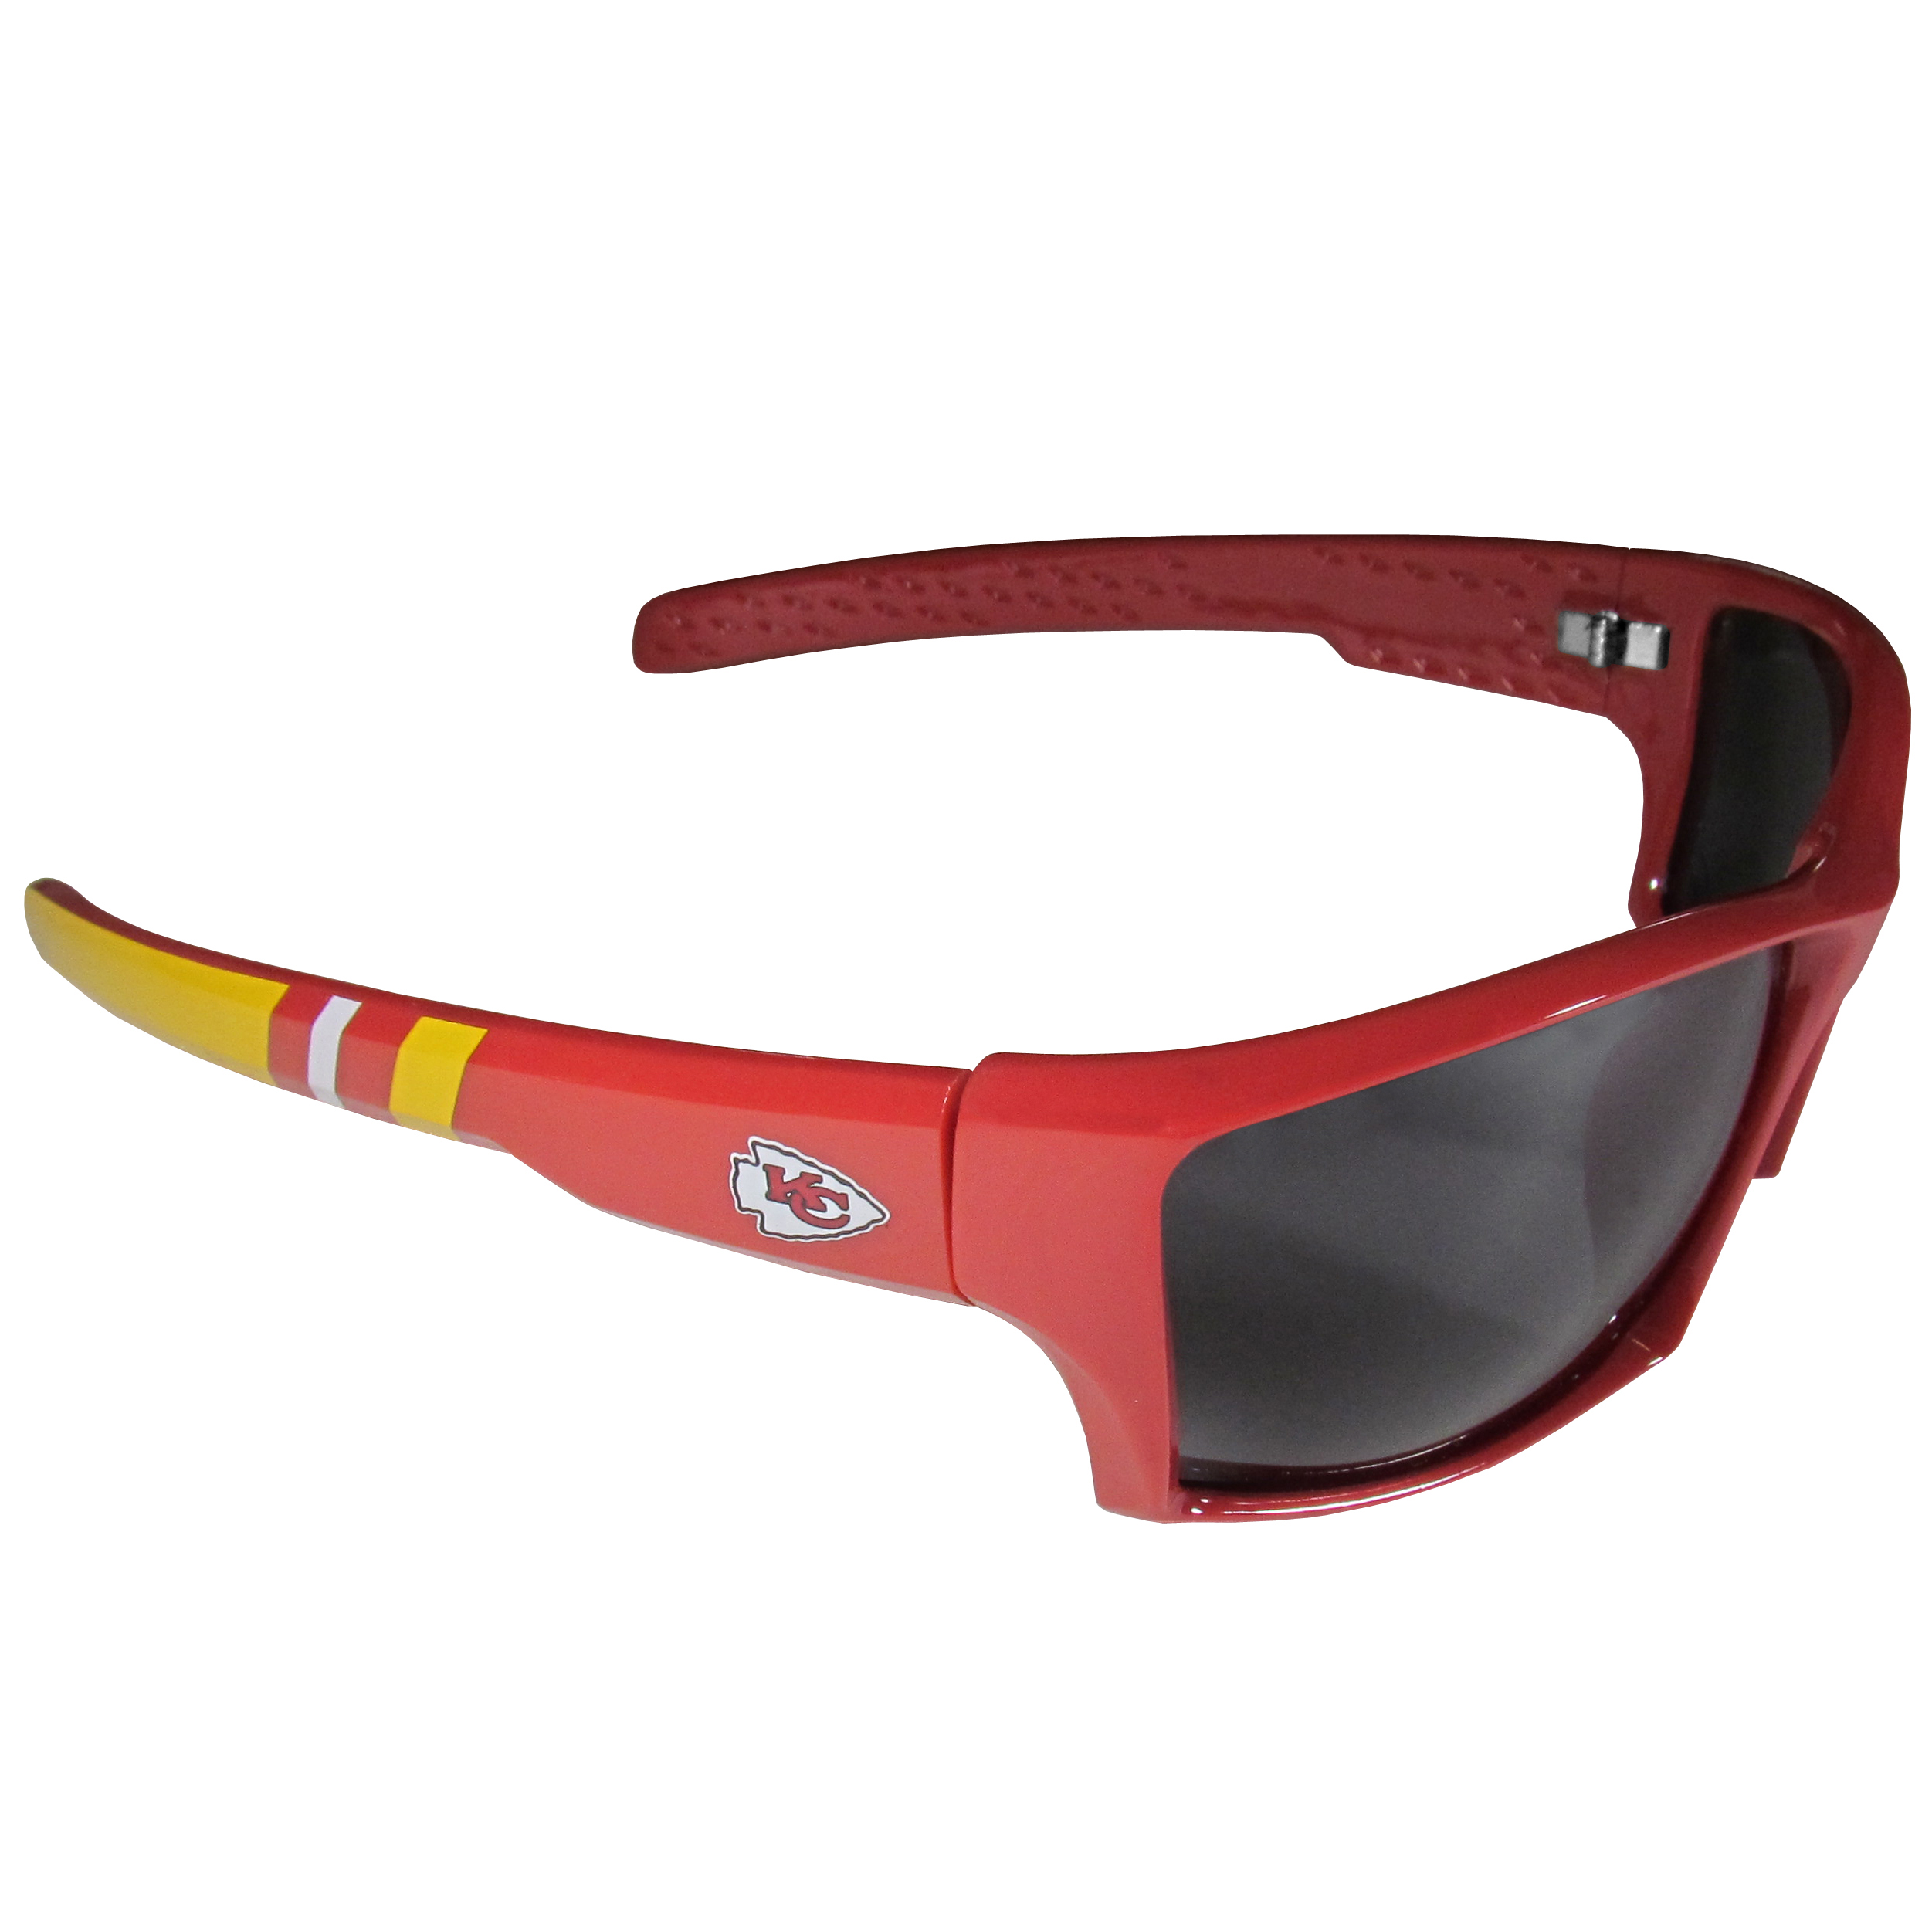 Kansas City Chiefs Edge Wrap Sunglasses - Be an icon of edgy style while you're in the stadium cheering your Kansas City Chiefs to victory with our polarized wrap sunglasses that feature 100% UVA/UVB rating for maximum UV protection. The light-weight frames are built to last with flex hinges for comfort and durability which make them perfect for driving or just lounging by the pool. The colorful rubber grips on the arms of these fashionable sunglasses make them perfect for someone with an active lifestyle. Whether you are hiking, fishing, boating, running on the beach, golfing or playing your favorite sport these designer frames will set you apart. Our edge wrap sunglasses are true quality eyewear at an affordable price. The wrap style frames come with team colored stripes and team logos so you can show off your die-hard team pride while protecting your eyes from those bright sun rays.